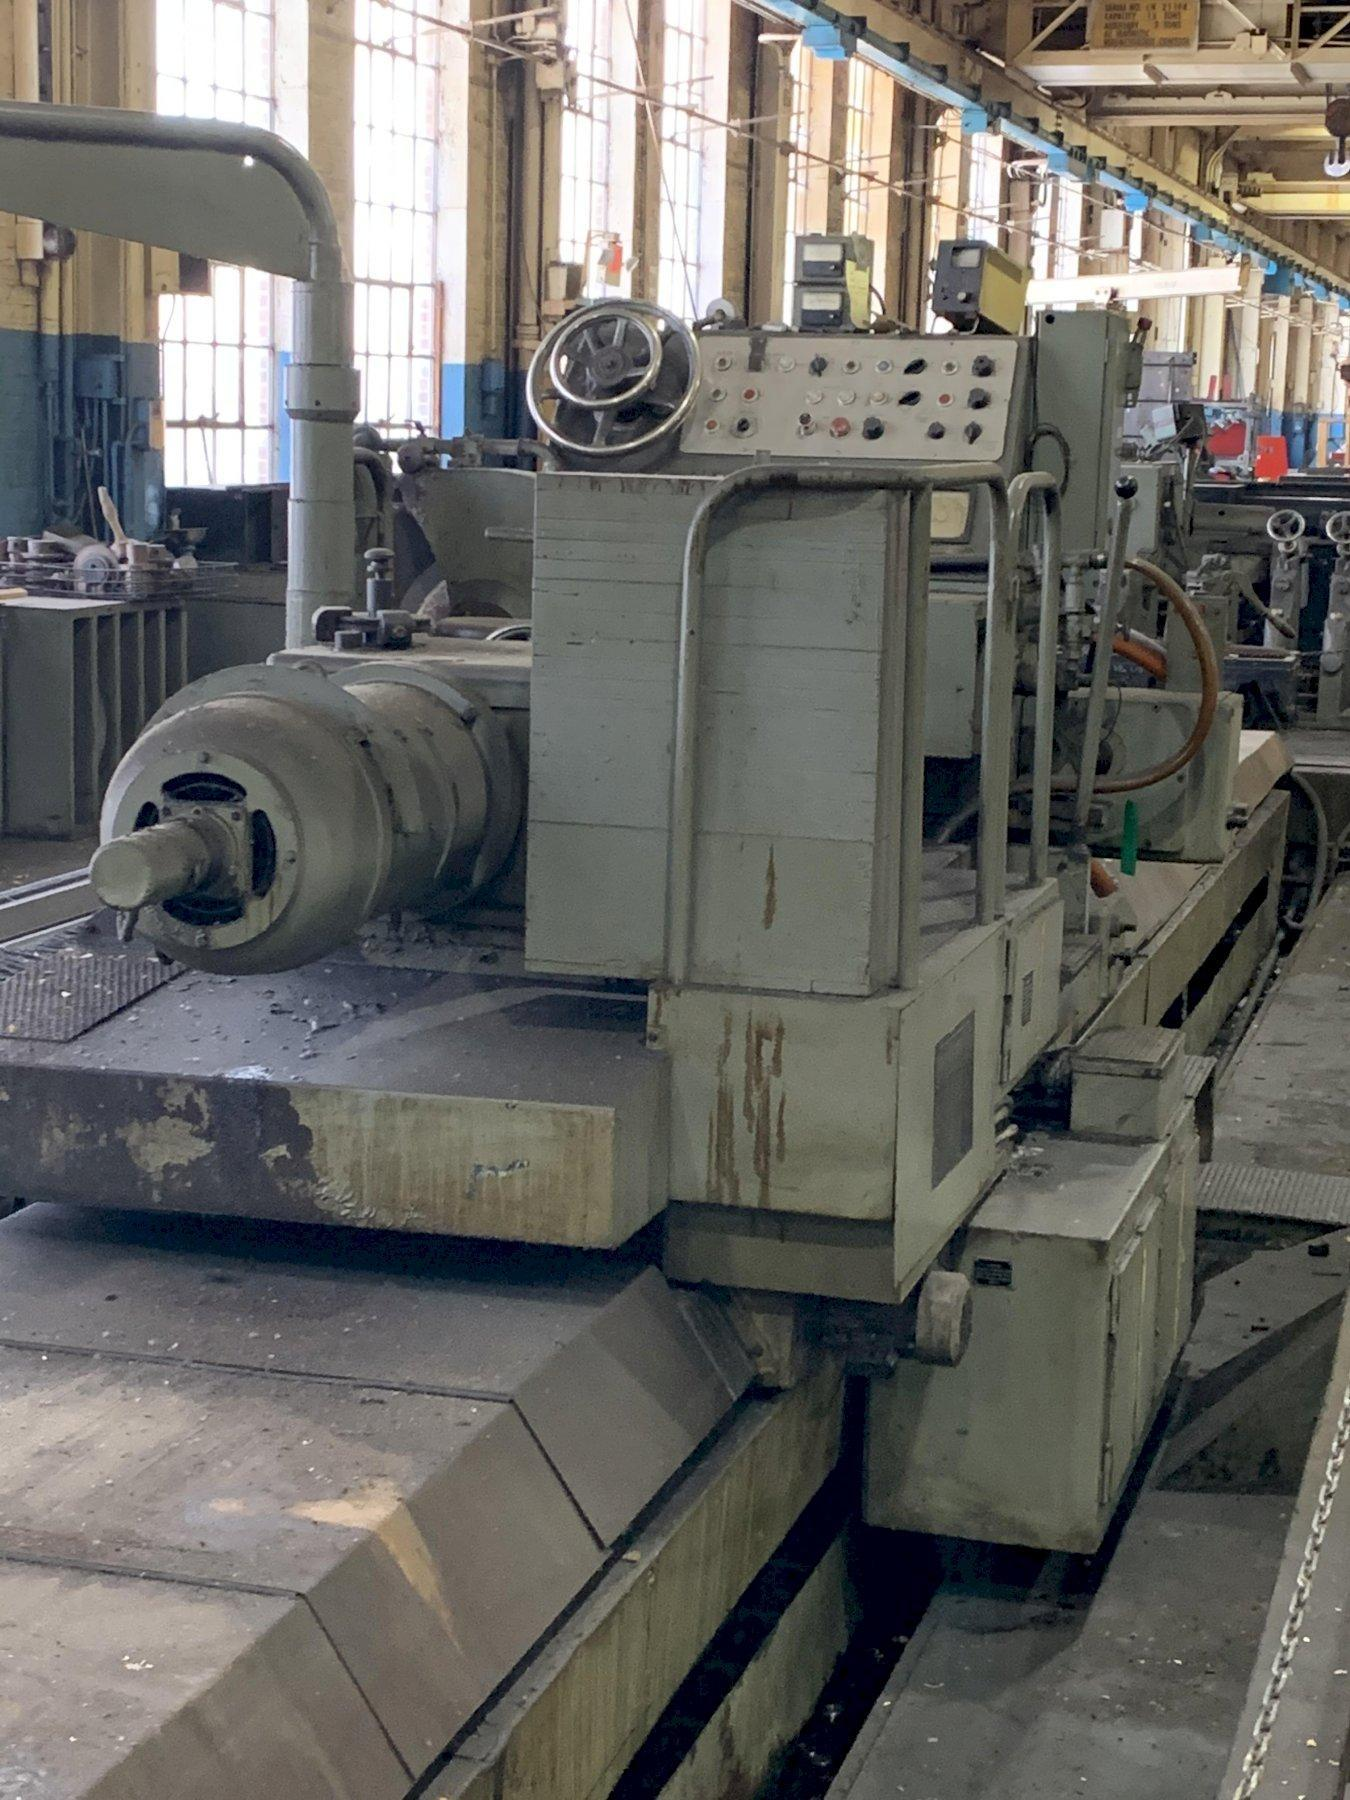 """40"""" x 393"""" WALDRICH ROLL GRINDER, Model WSIII40, 29"""" Face Plate, 21"""" 4-Jaw Chuck, Crowning, 30"""" x 4"""" Wheel Size, Filtrations and Chip Separator, New 1965."""